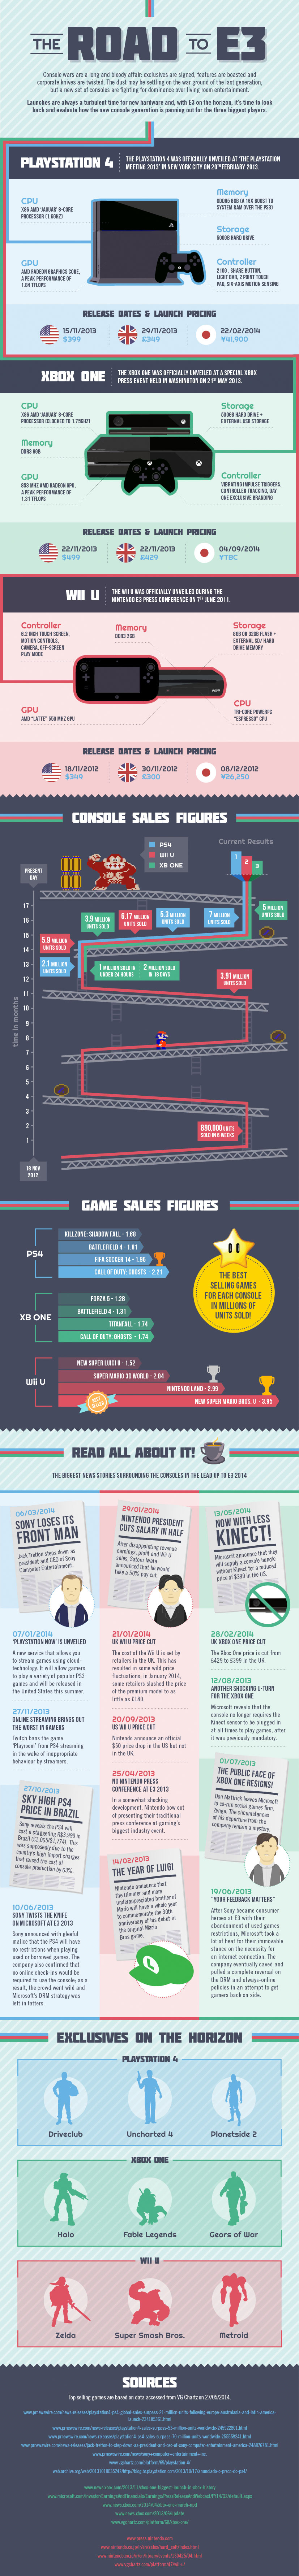 Road-to-E3-infographic